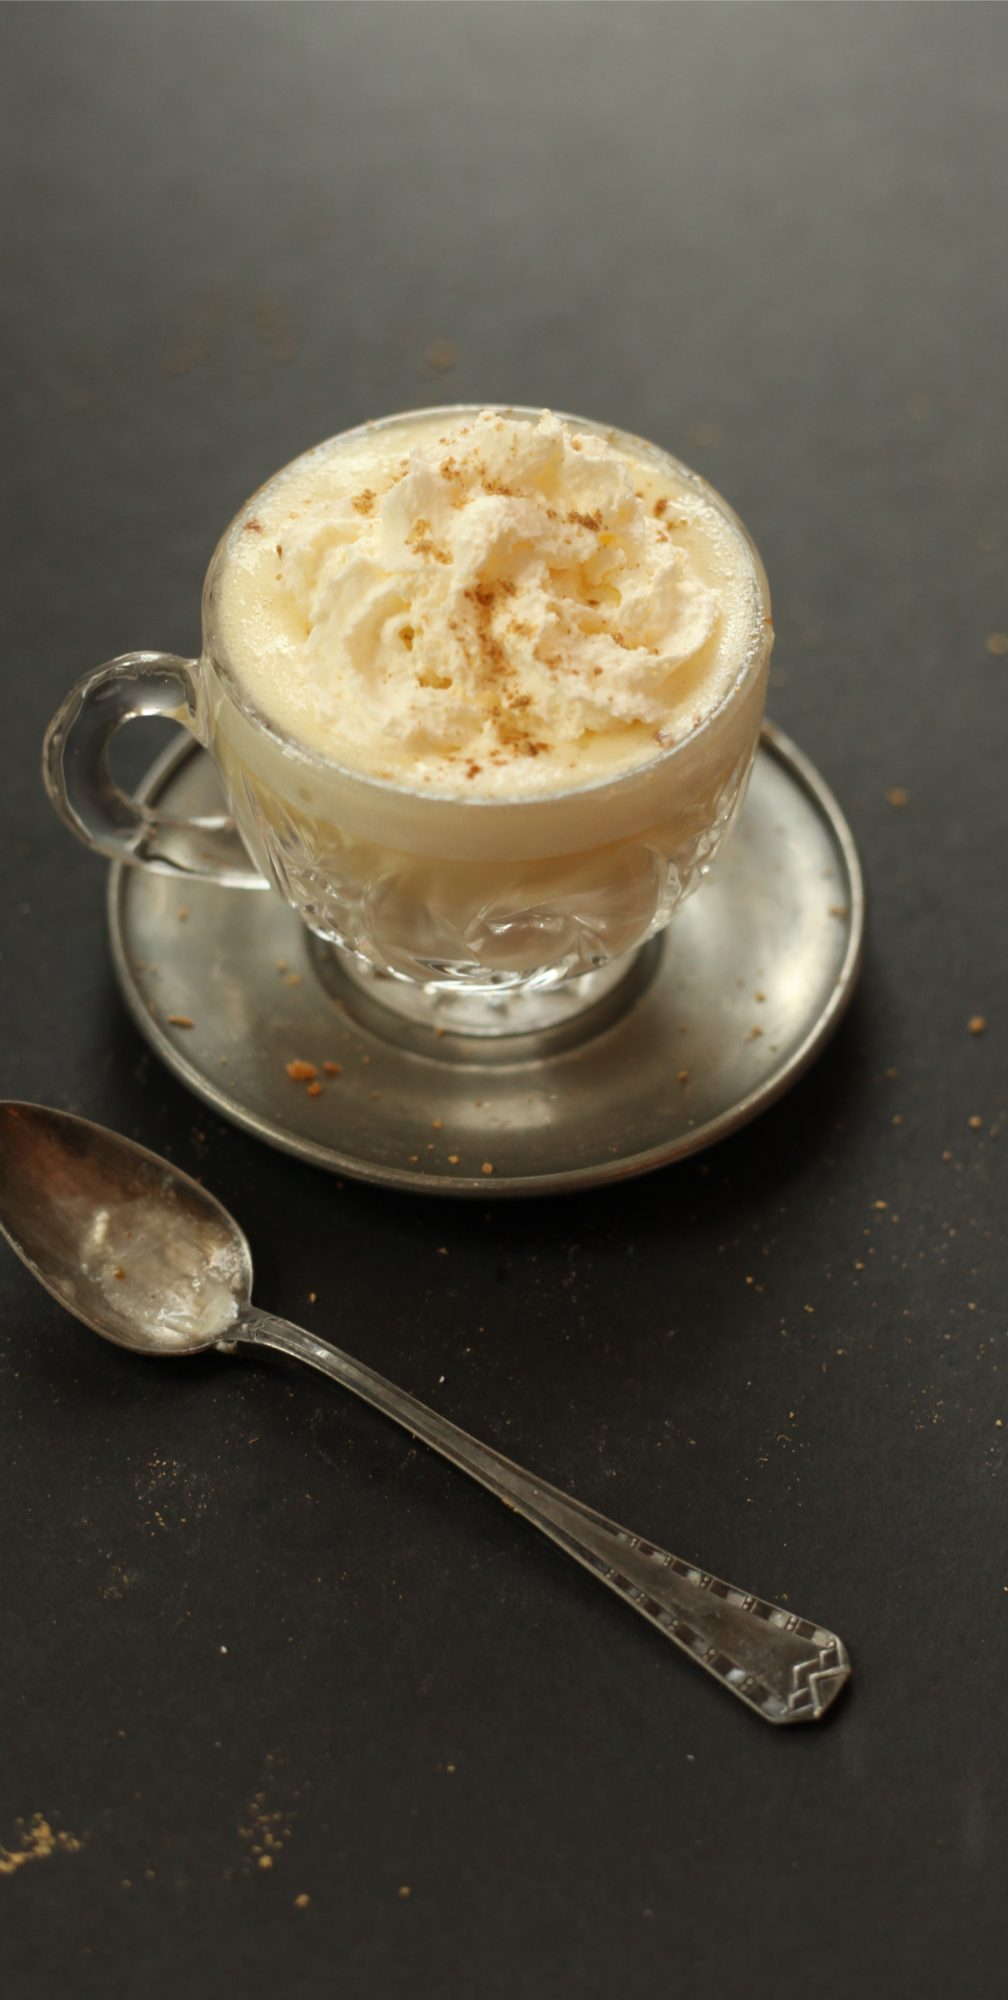 Cup of white hot chocolate with teaspoon and cream